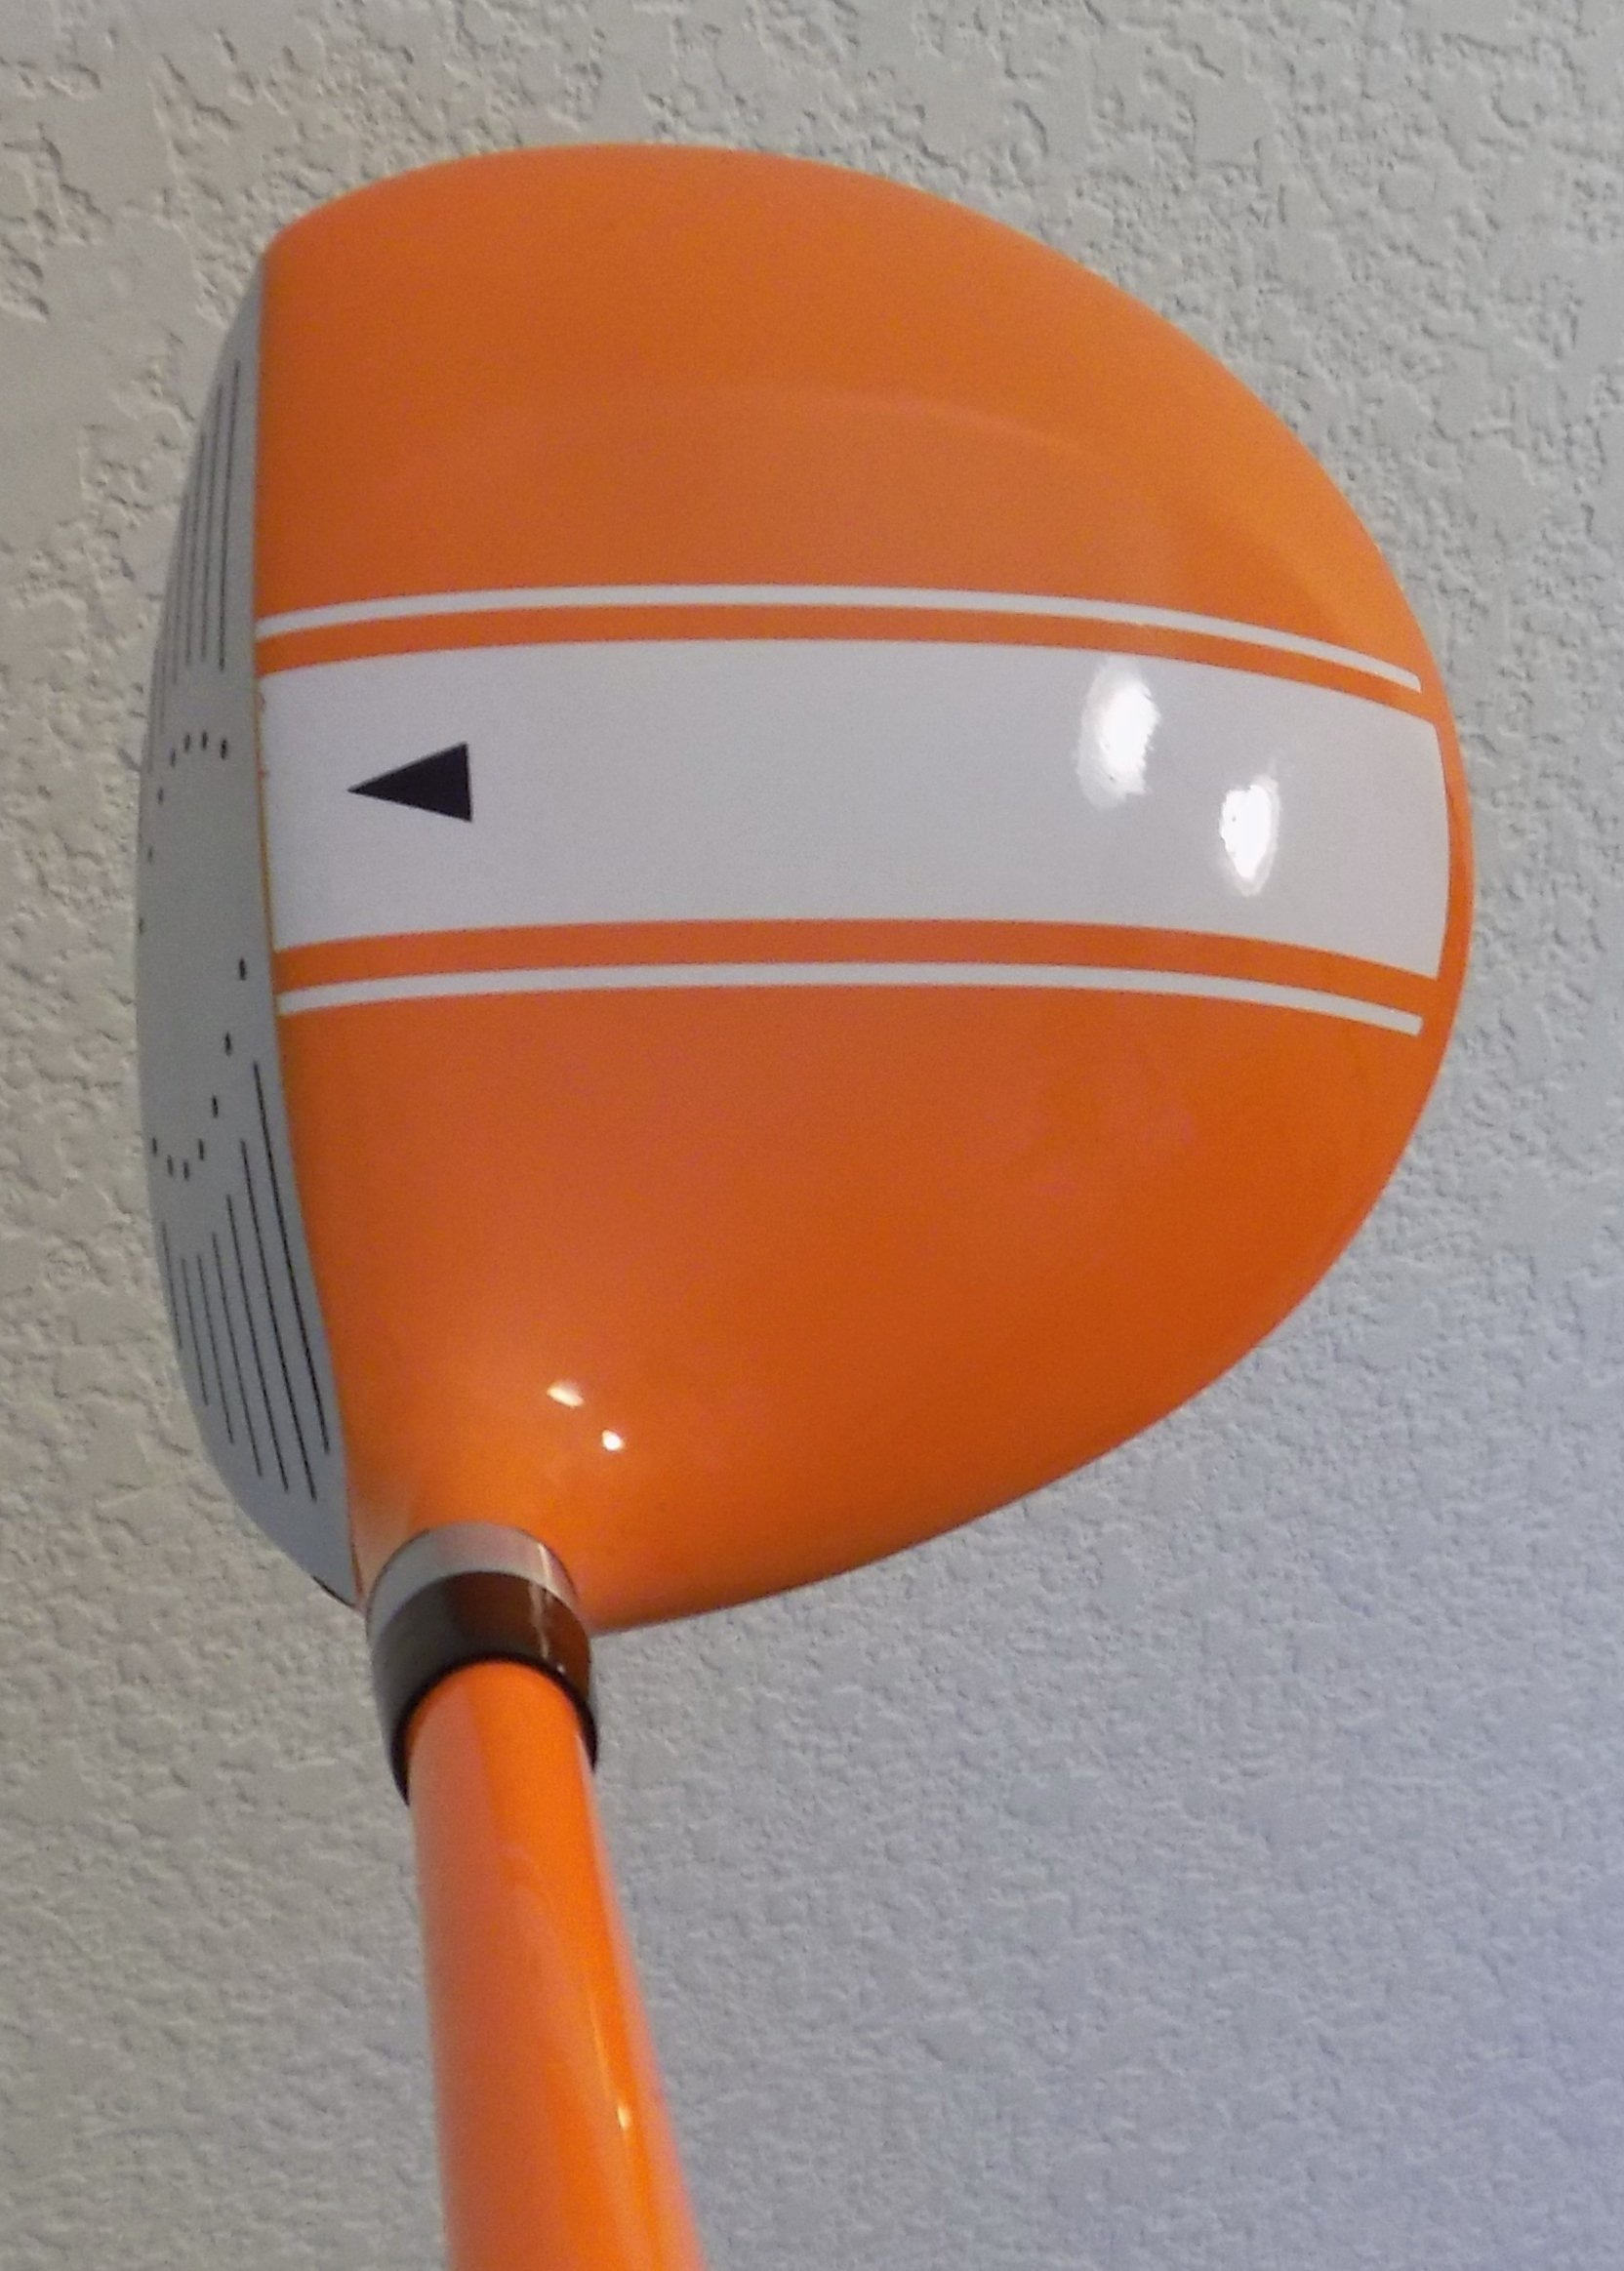 Boys Junior Golf Club Set with Stand Bag for Kids Ages 3-6 Orange Color Right Handed Premium Professional Quality by PG Golf Equipment (Image #3)